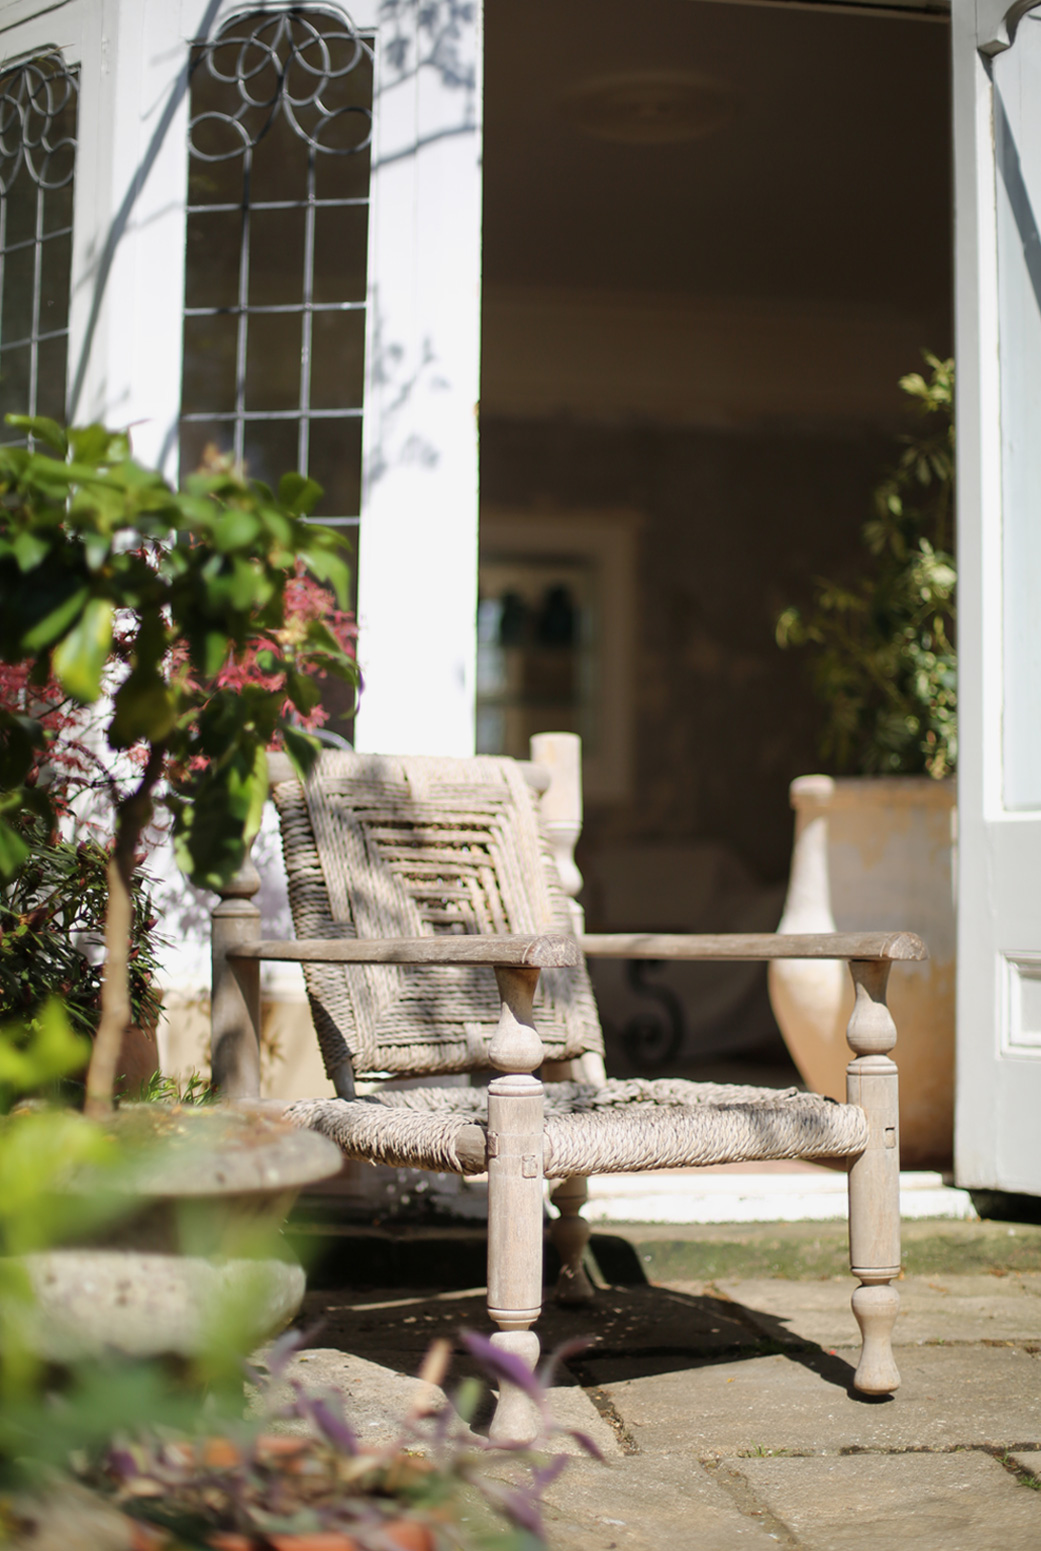 Hannah sets a chair outside in her garden to make the most of the spring sun,